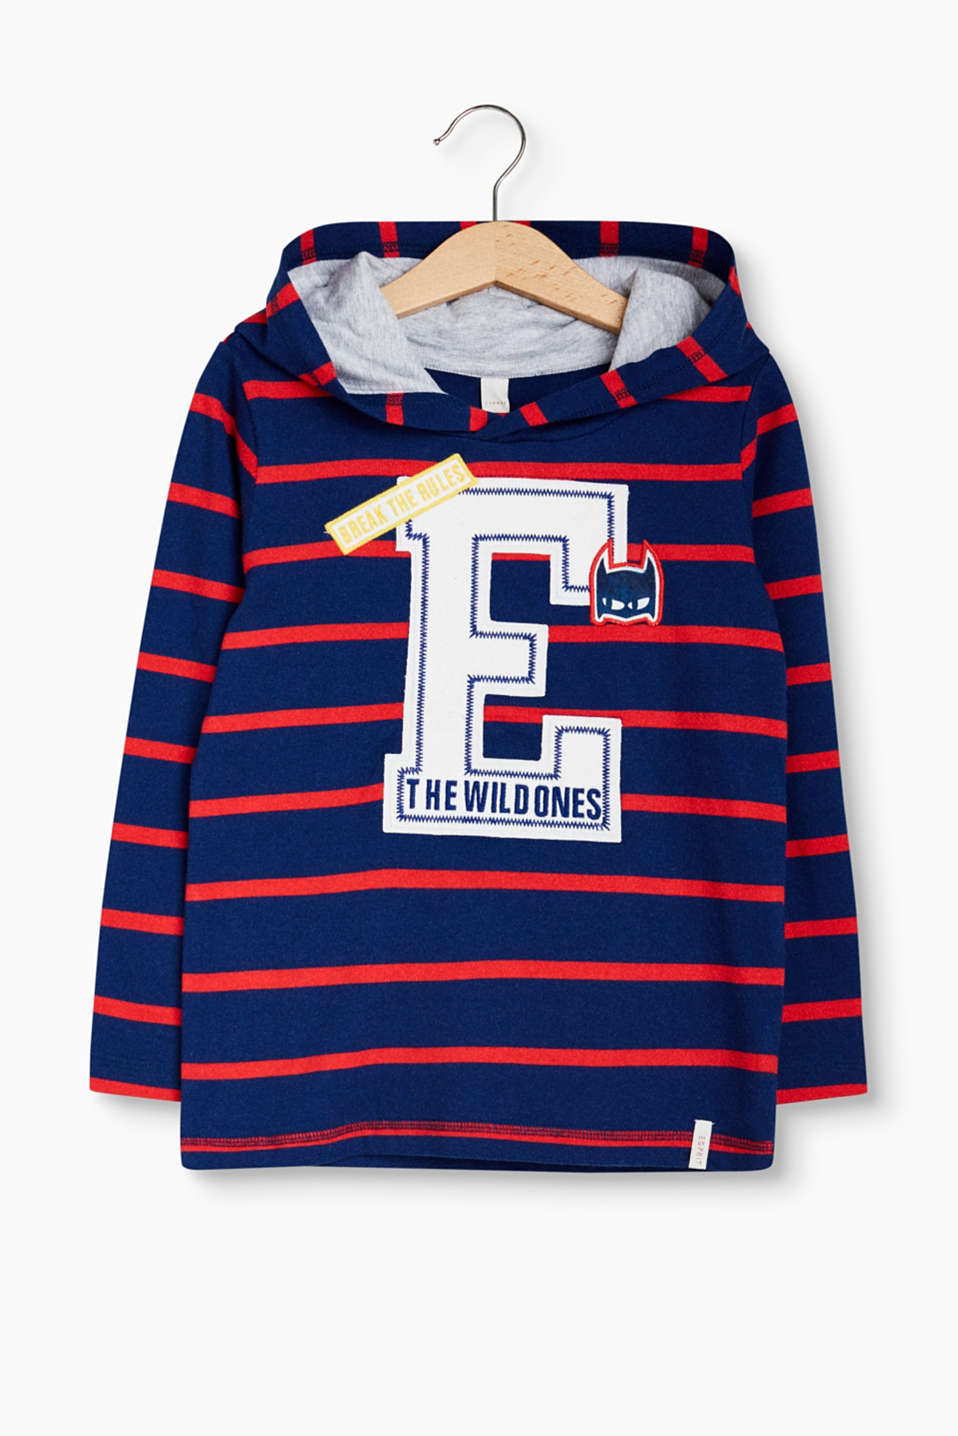 Cool stripes for little superheroes: Hooded long sleeve top with appliqués, 100% cotton